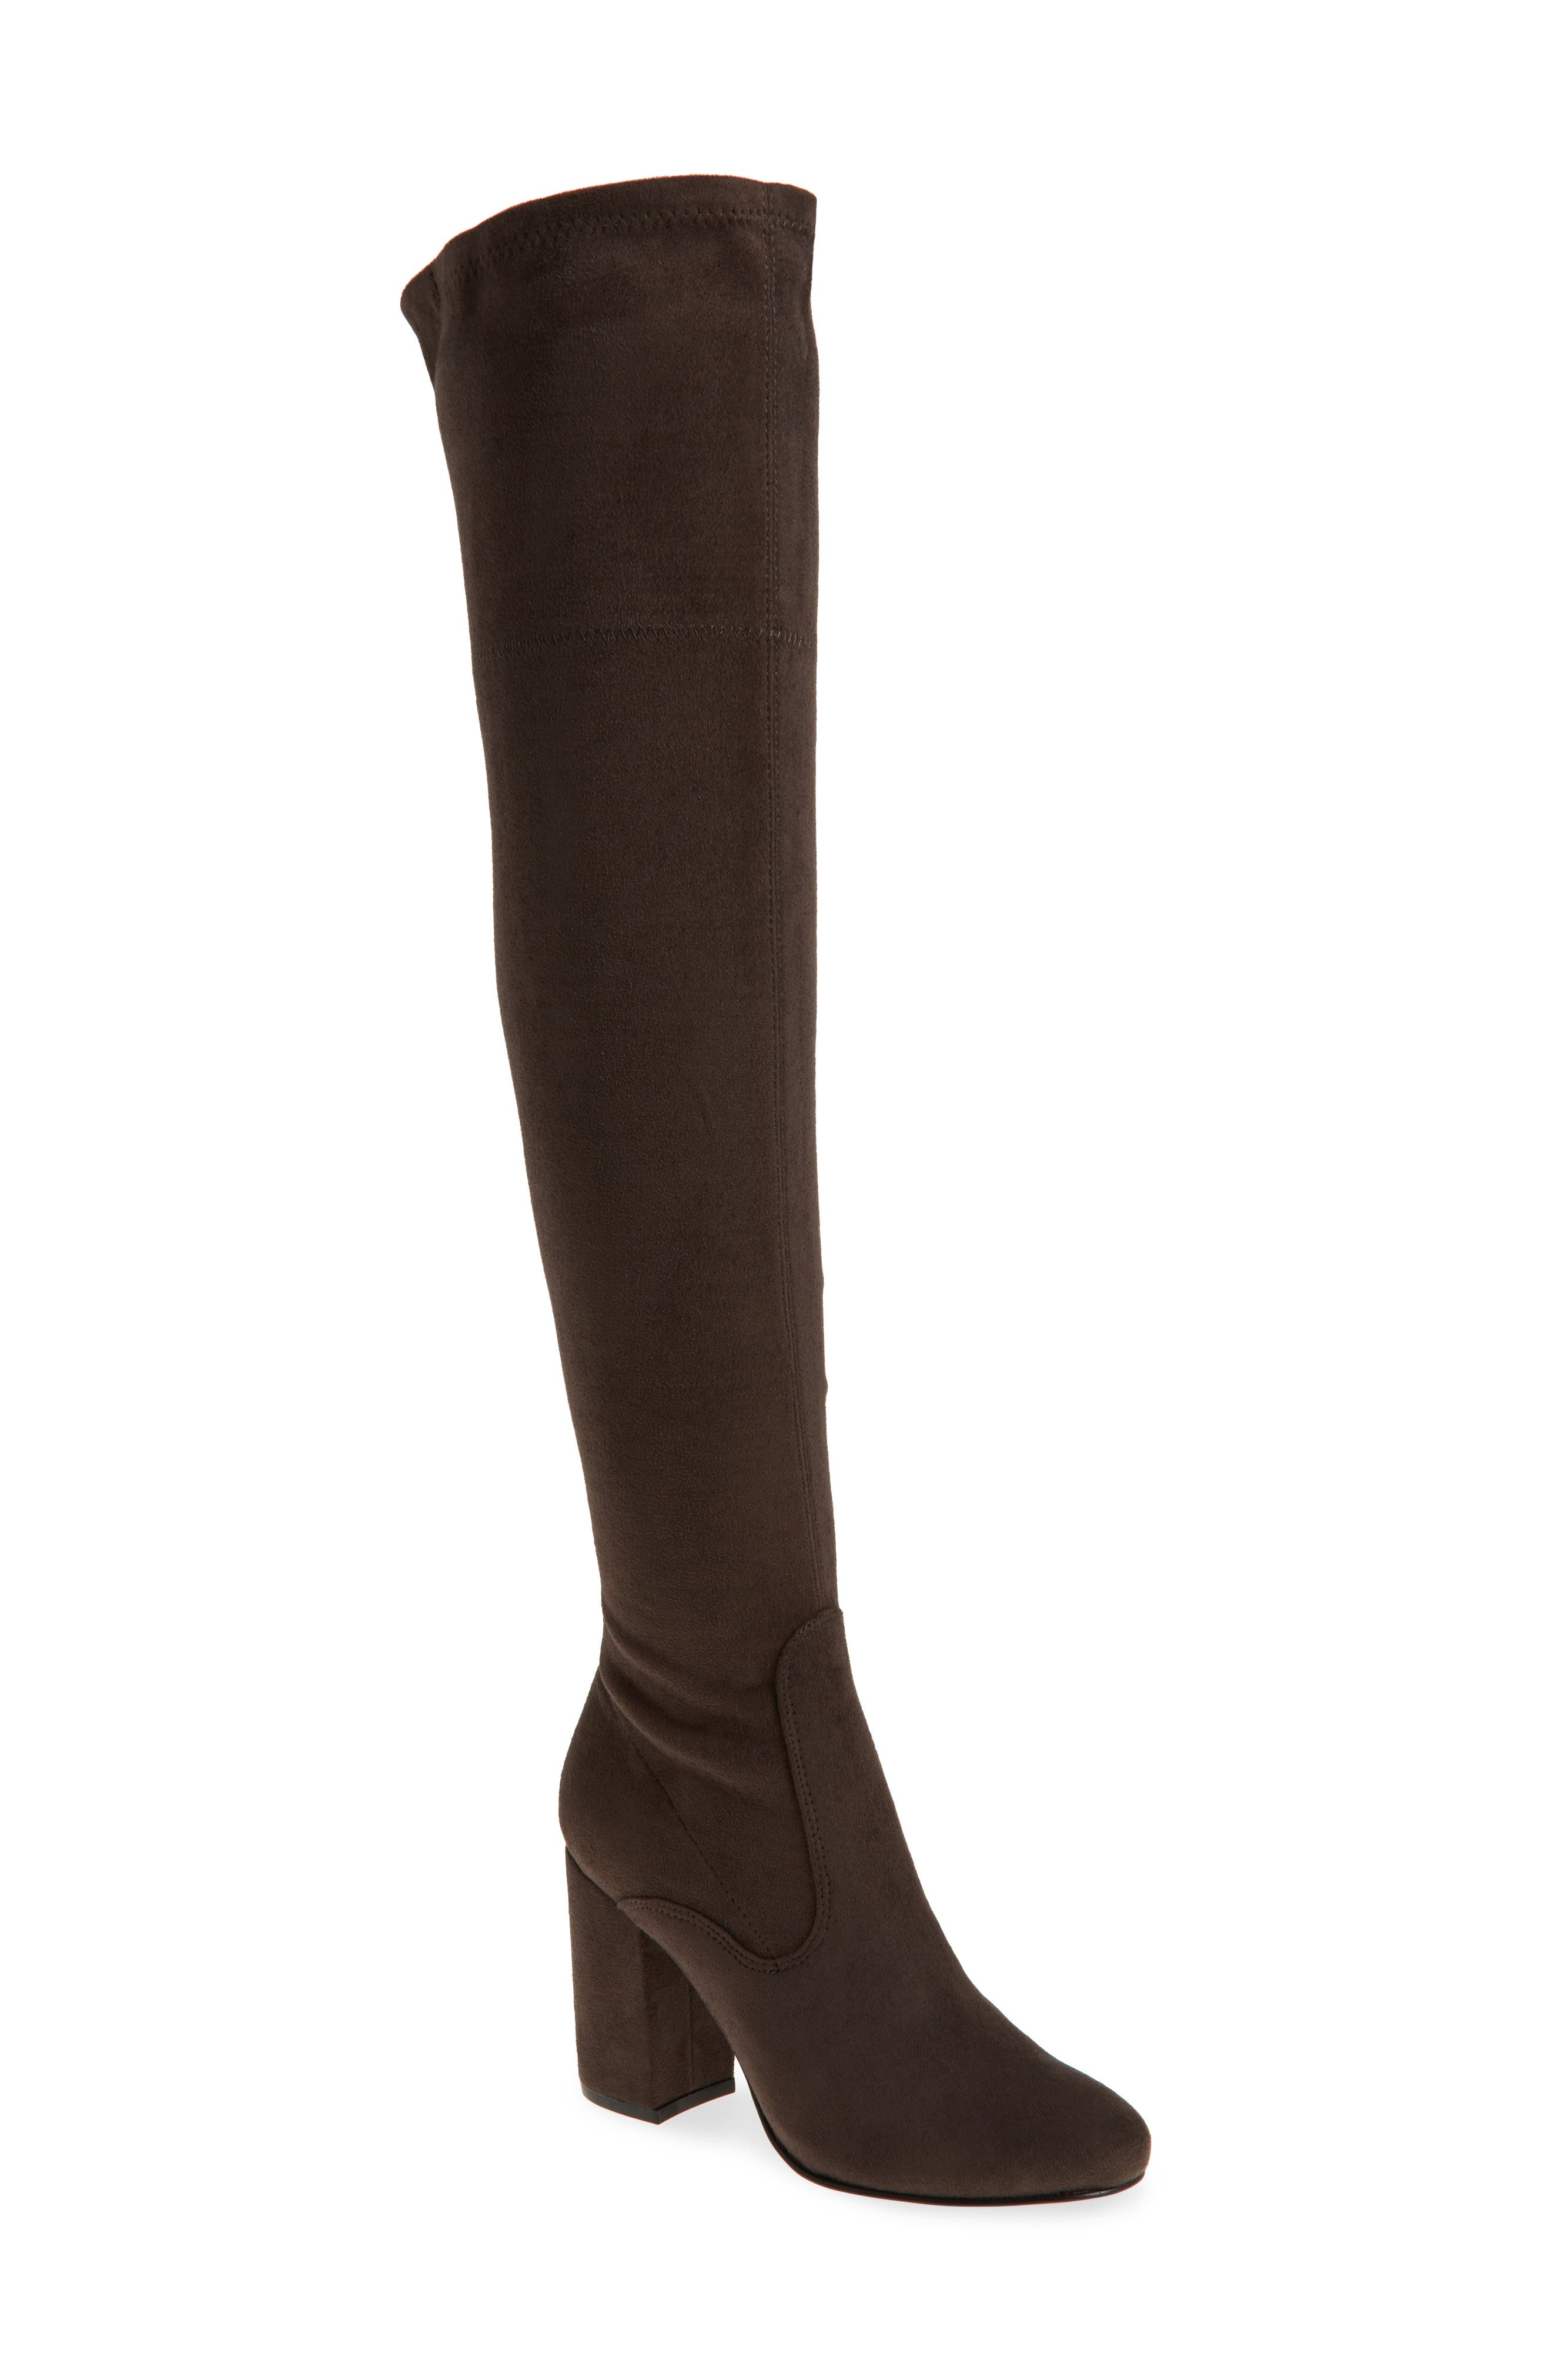 Main Image - Kenneth Cole New York Carah Over the Knee Boot (Women)